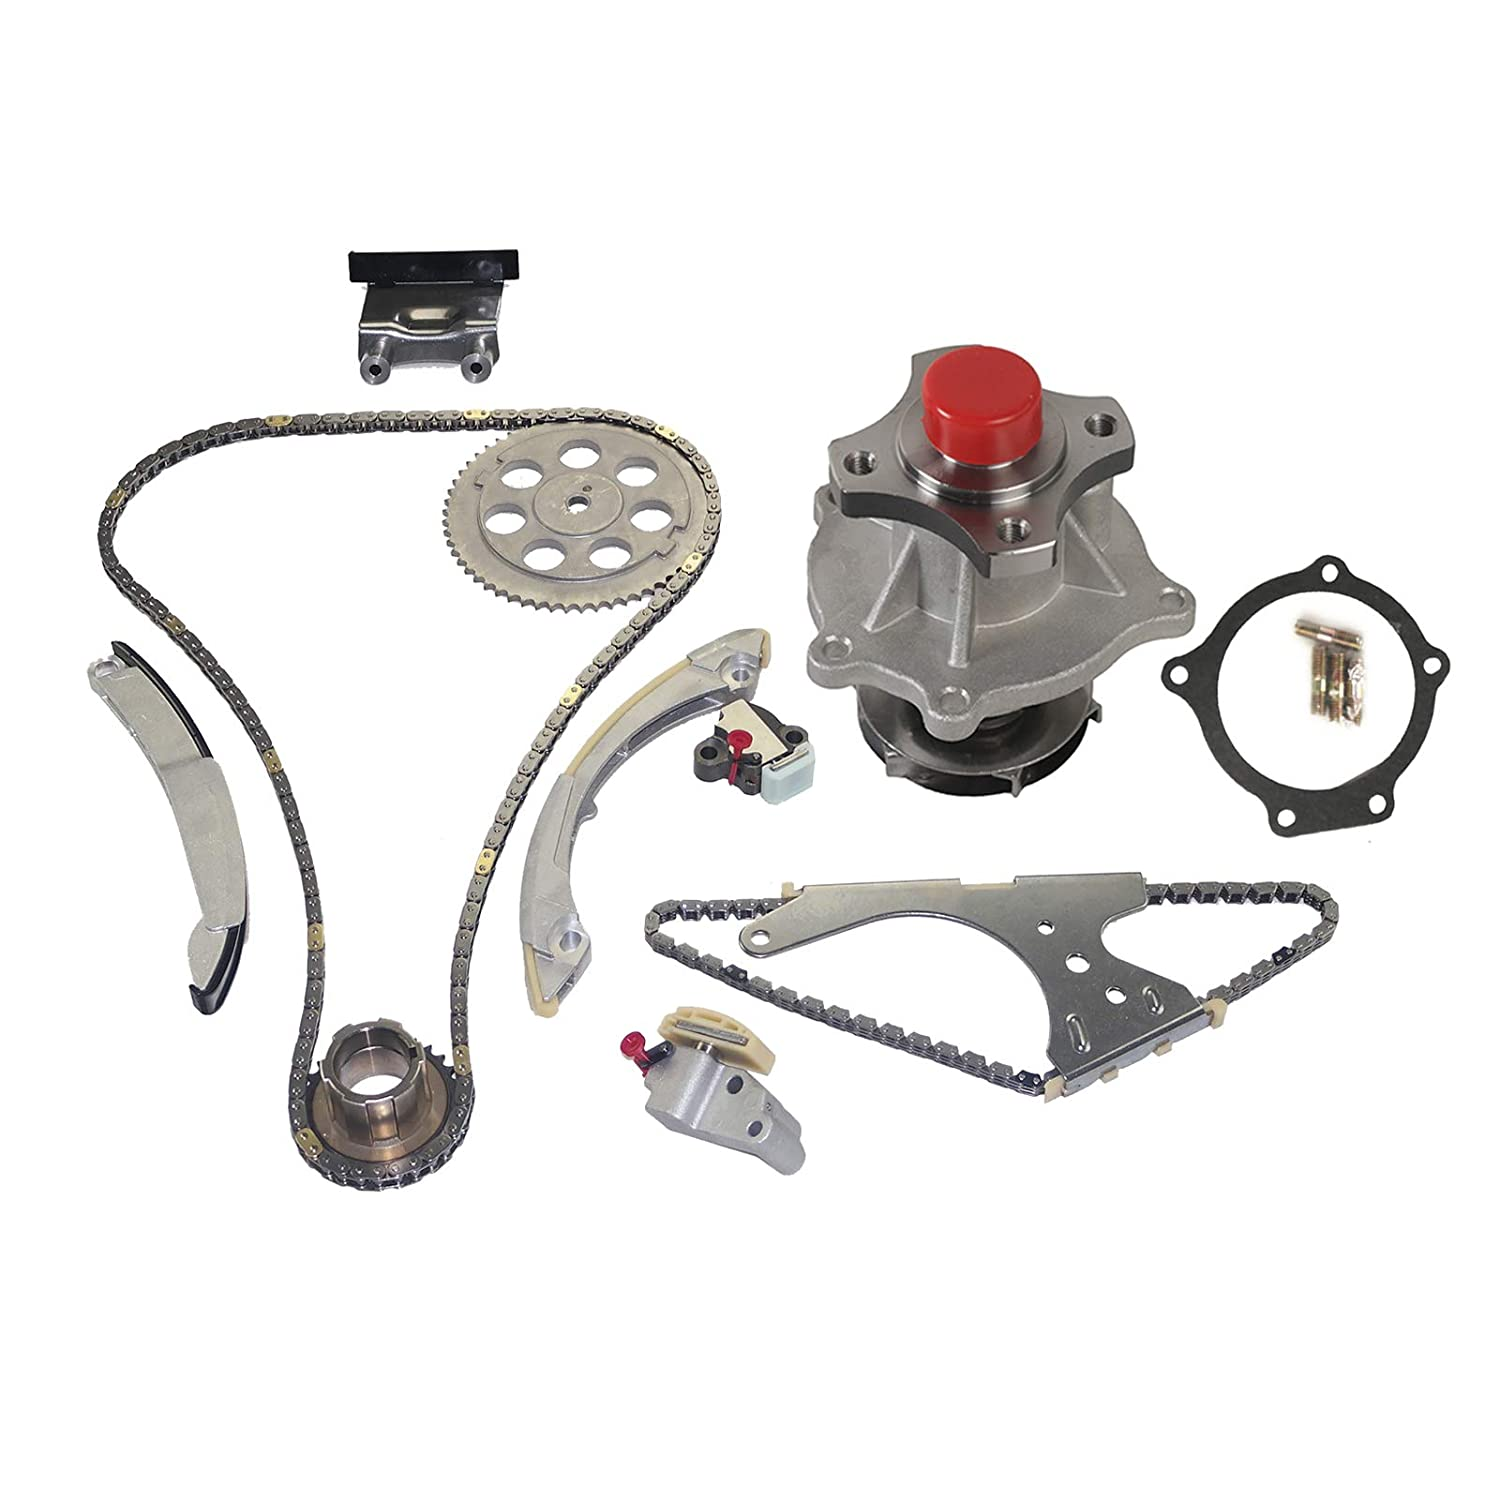 Hummer H3 Isuzu i-290 /& i-370 2.9L 3.7L L4 GMC Canyon MOCA Timing Chain Kit Water Pump for 07-11 Chevrolet Colorado